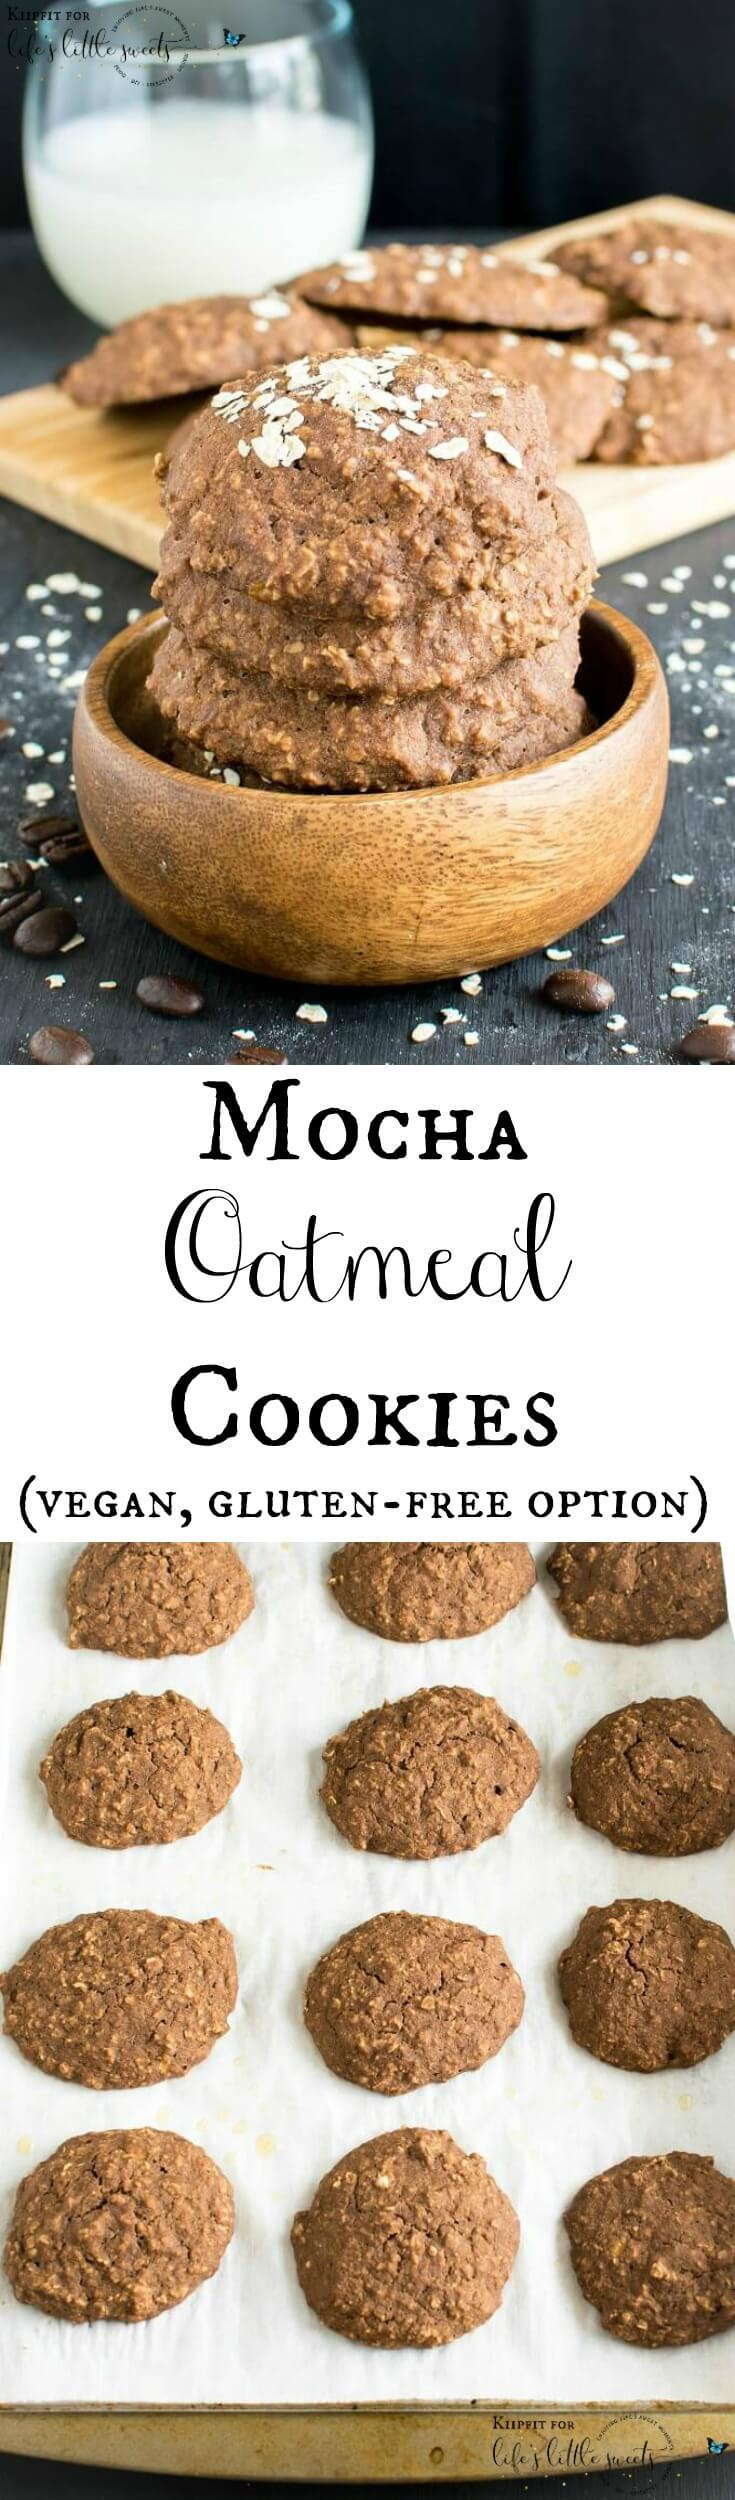 These Mocha Oatmeal Cookies are soft and chewy with a distinct flavor of fresh brewed coffee.  These vegan cookies are easy to bake and heavenly for taste buds especially if you are coffee lover. #mocha #oatmeal #cookies #healthy #vegetarian #recipe #maplesyrup #cocoapowder #brownsugar #dairyfree